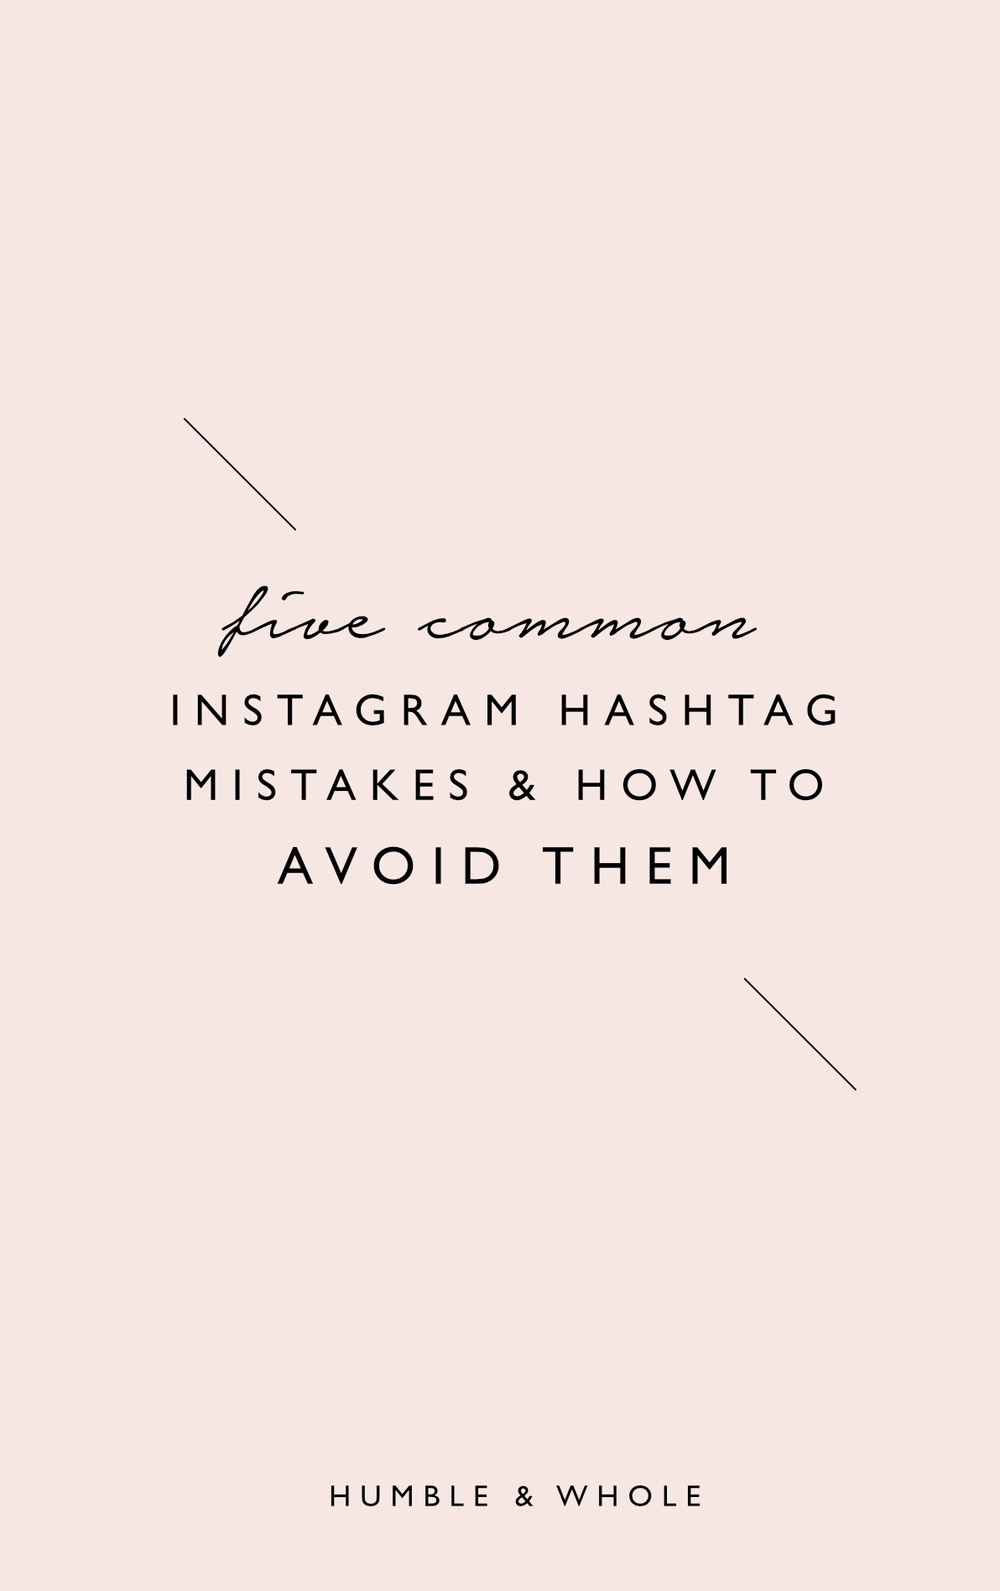 Are you clueless when it comes to using the right hashtags on Instagram?  We've got you covered!  In this post, we're discussing the five most common Instagram hashtag mistakes and how you can be sure to avoid them.  Click through to learn how to use hashtags that will attract an engaged audience to your Instagram account and our secret weapon for finding the perfect Instagram hashtags!